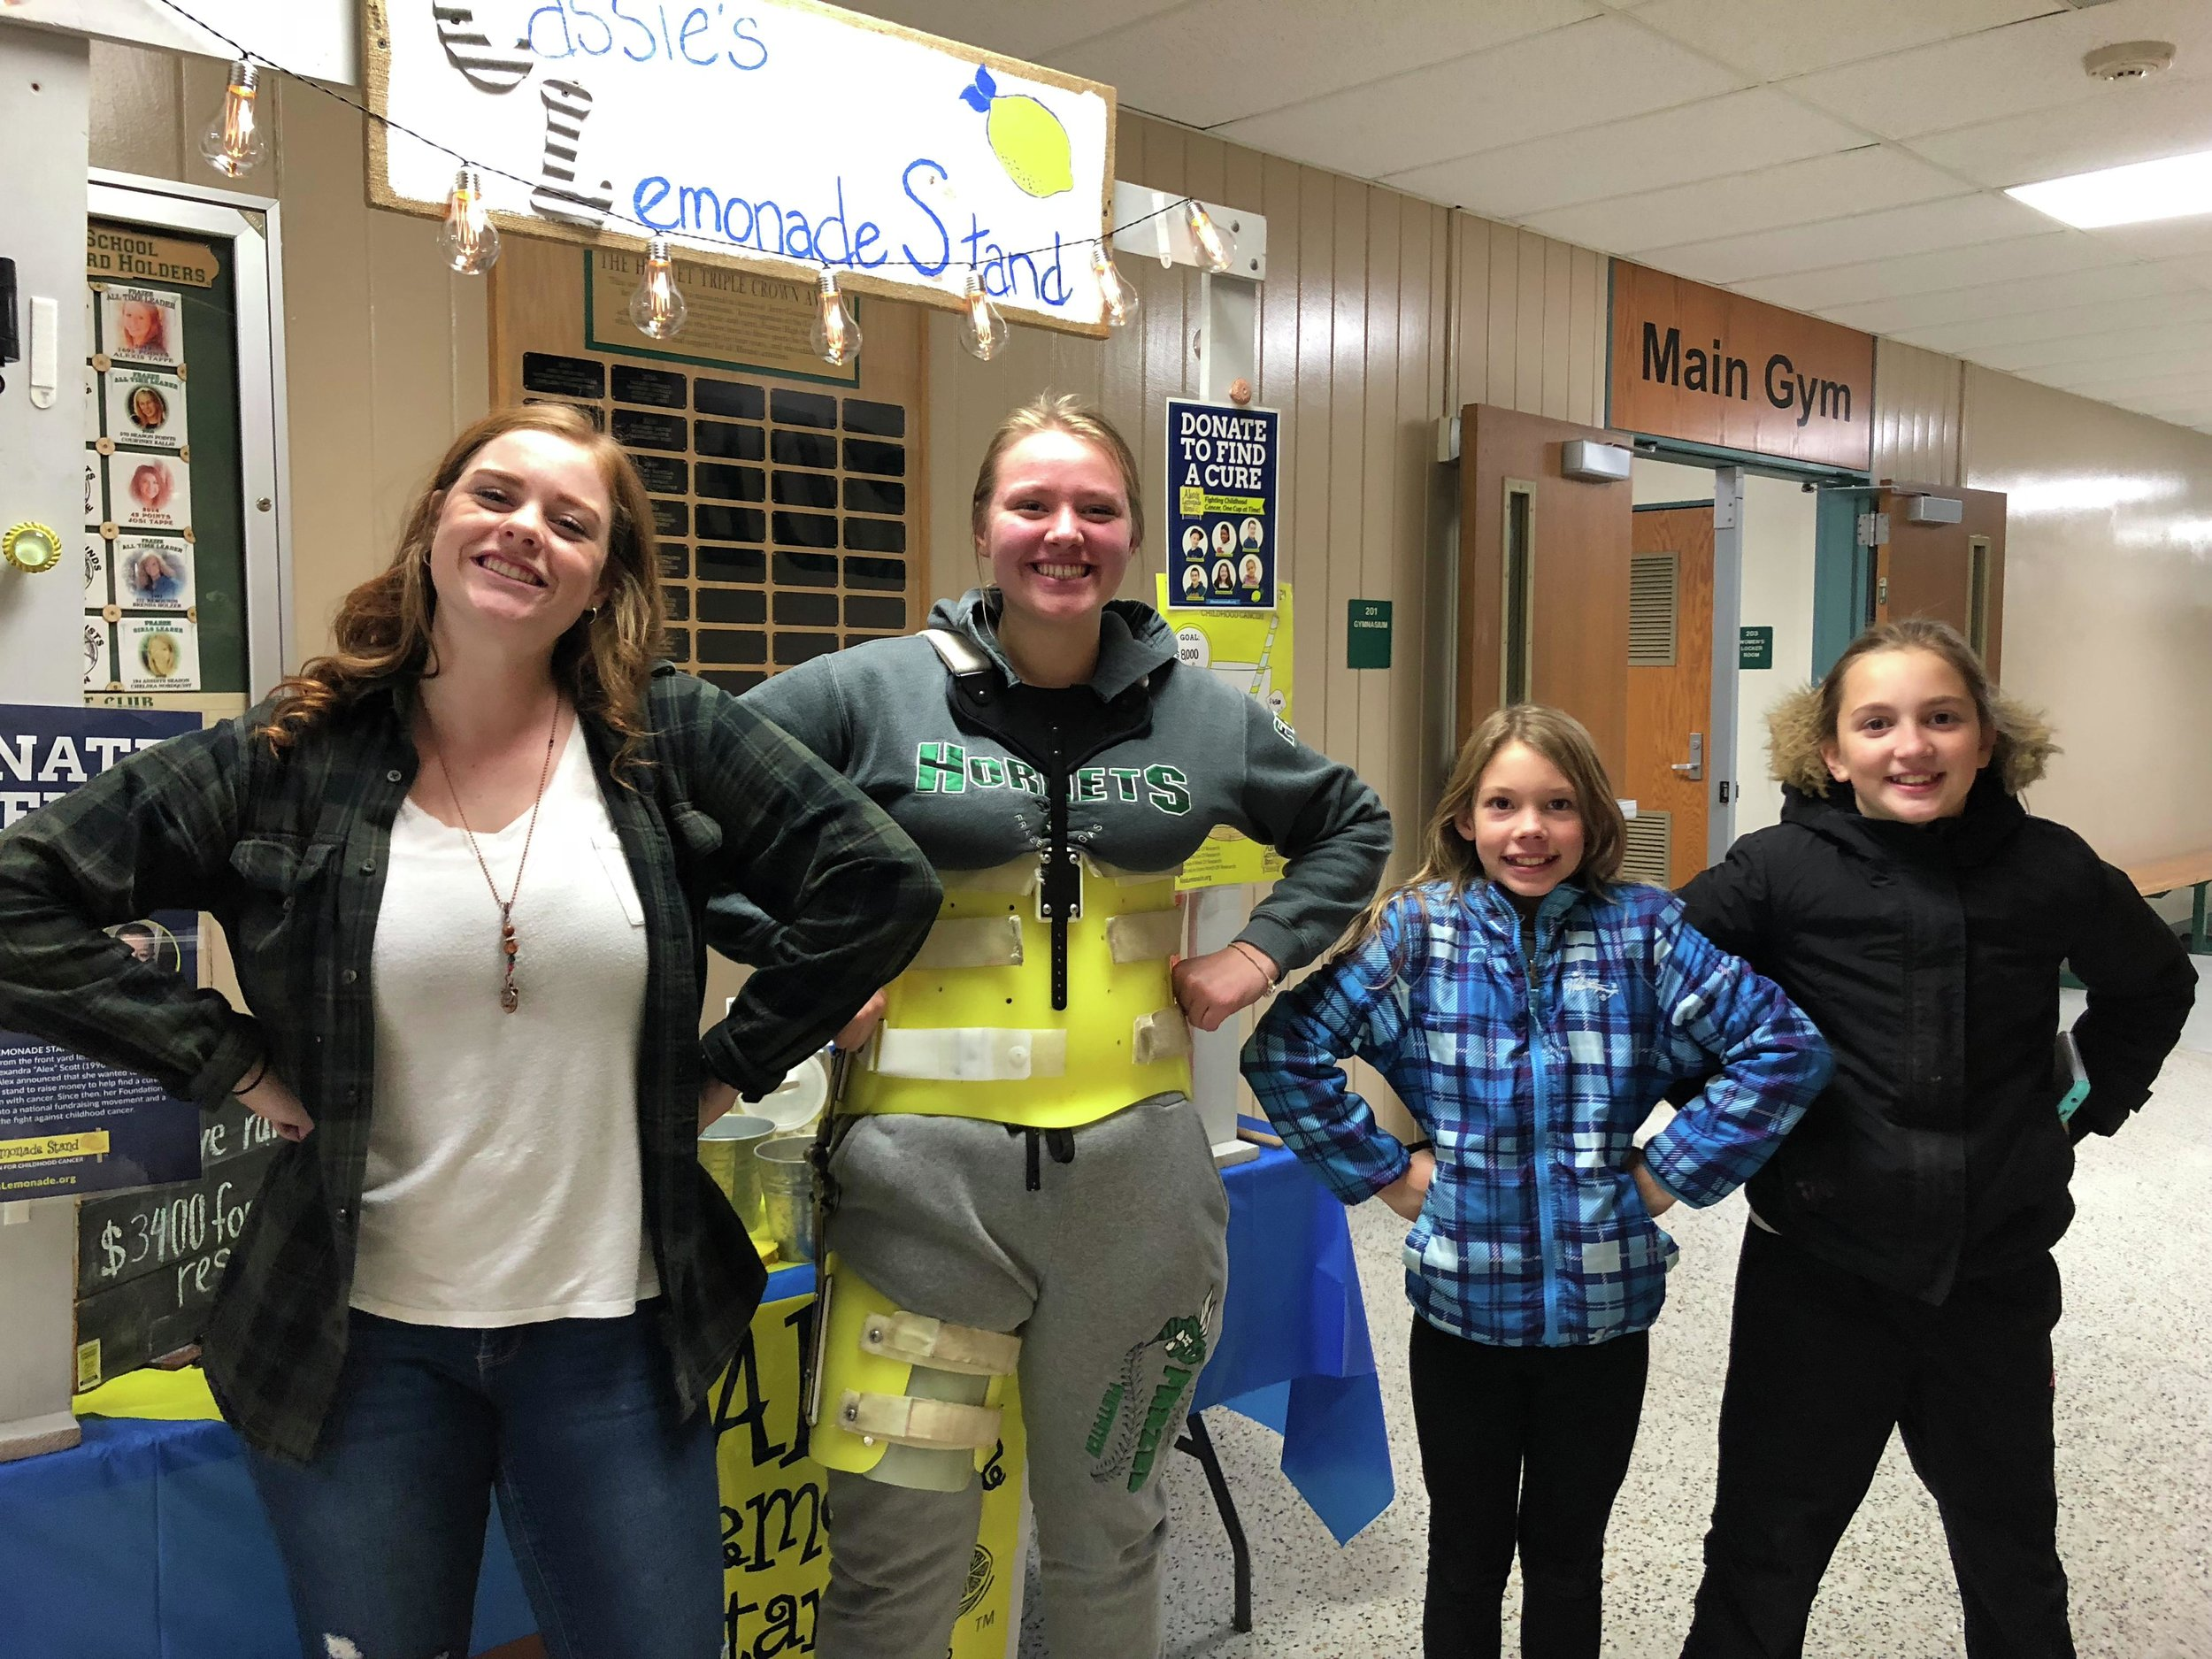 Cassidy Shipman, far left, with friend Annie Bachmann and some younger supporters of 'Cassie's Lemonade Stand' at a recent high school sports event. (Submitted photo)